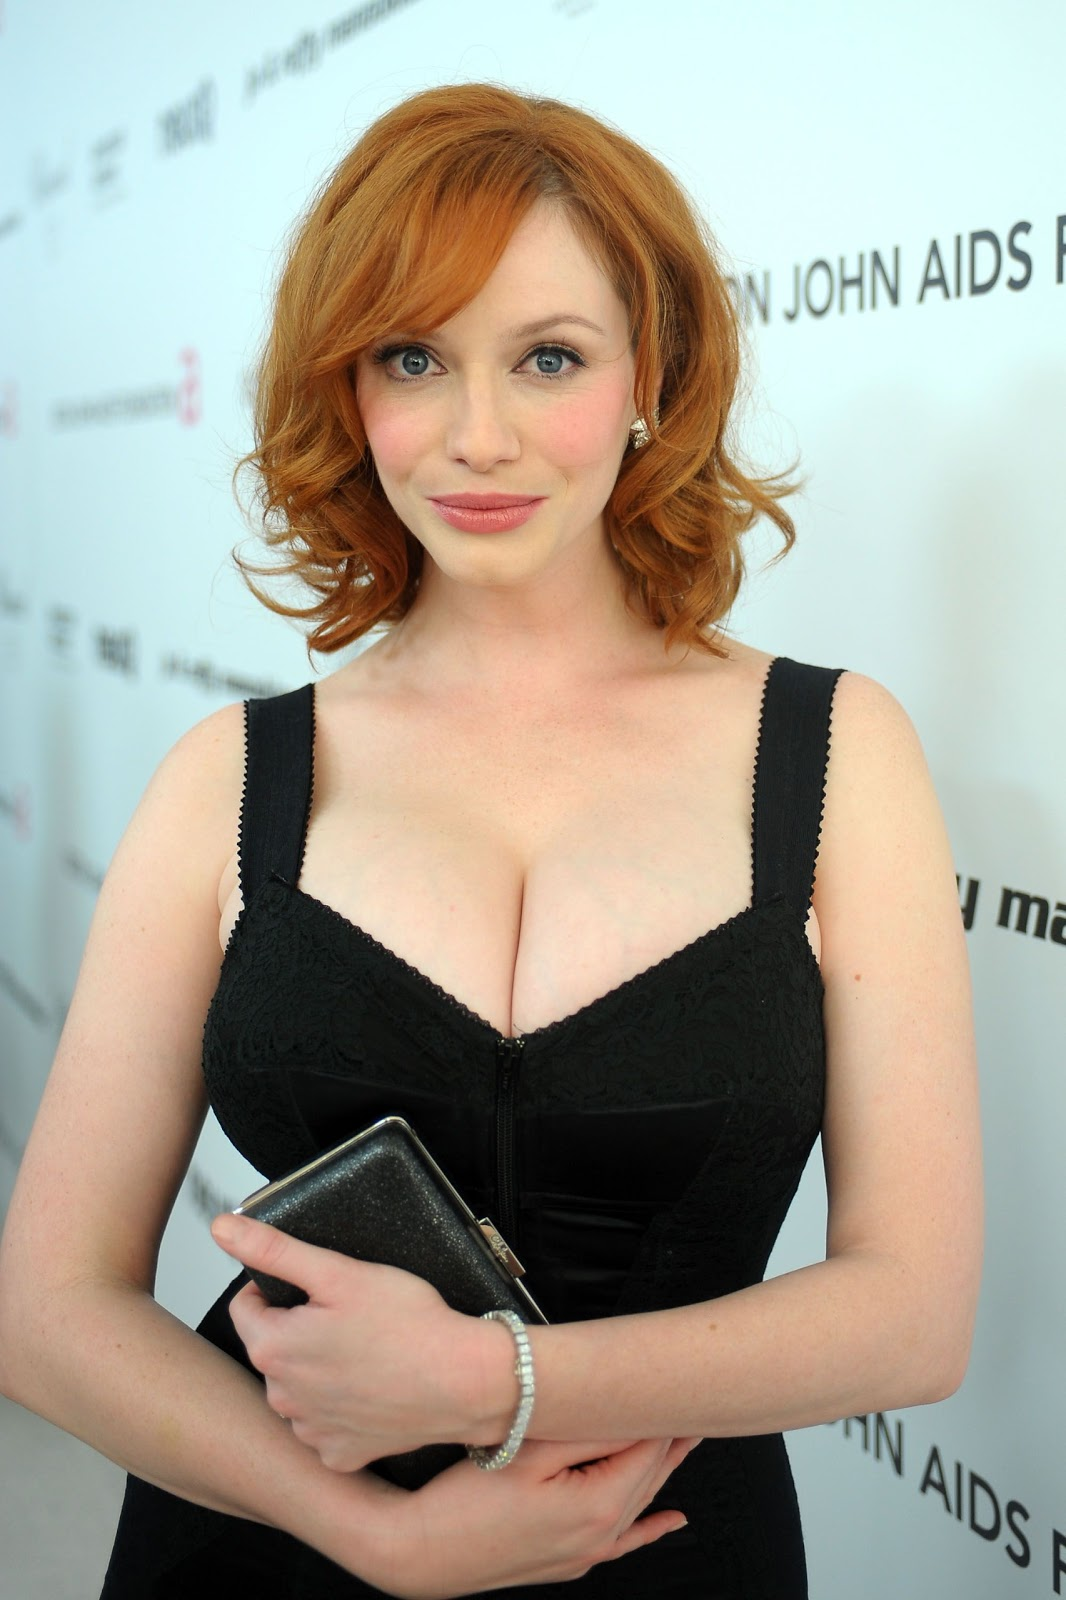 http://2.bp.blogspot.com/-TD4SKI8Ory4/ThOgu7eJapI/AAAAAAAACH0/FOgNK0ZBxrk/s1600/Christina-Hendricks-attends-18th-Annual-Elton-John-AIDS-Foundation-Oscar-Party-8of23.jpg